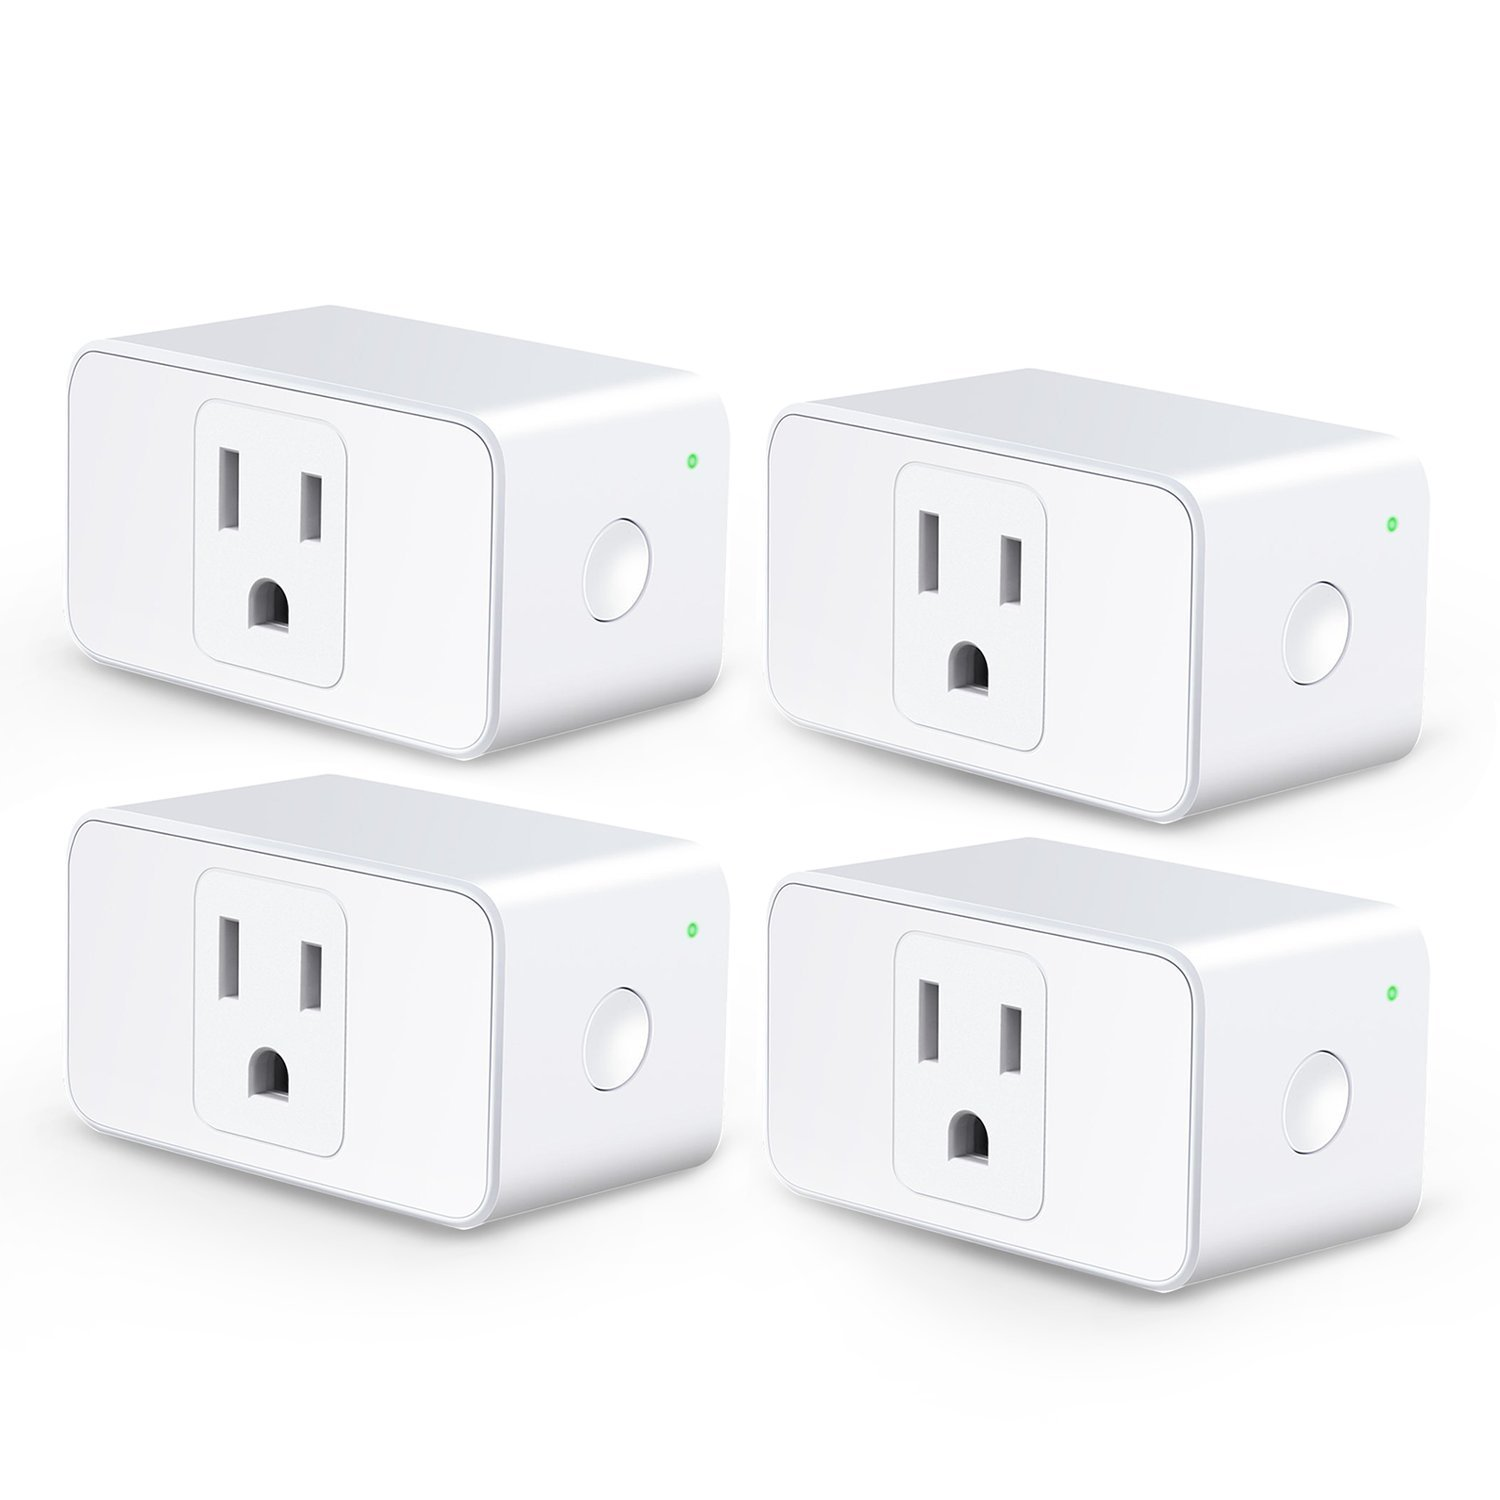 Meross WiFi Smart Plug Mini, 16 Amp & Reliable Wifi Connection Powered by Mediatek Chipset, Alexa and Google Voice Control, App Remote Control, Timer, Occupies Only One Socket, No Hub Needed, 4 Pack by meross